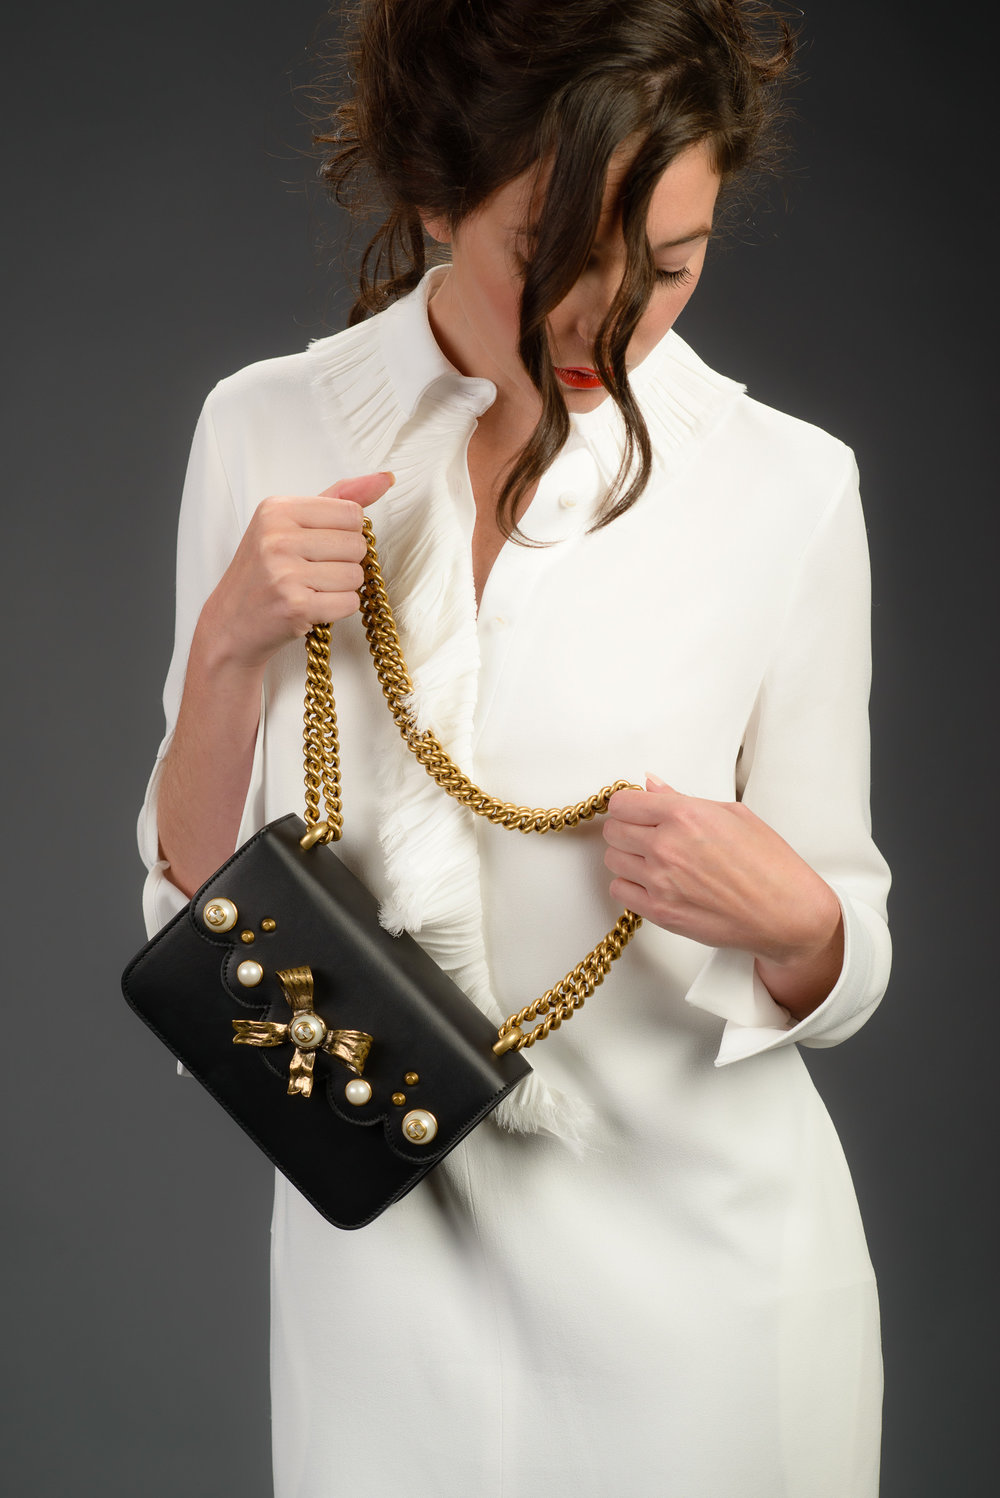 fashion-black-gucci-purse-gold-chain-white-dress.jpg